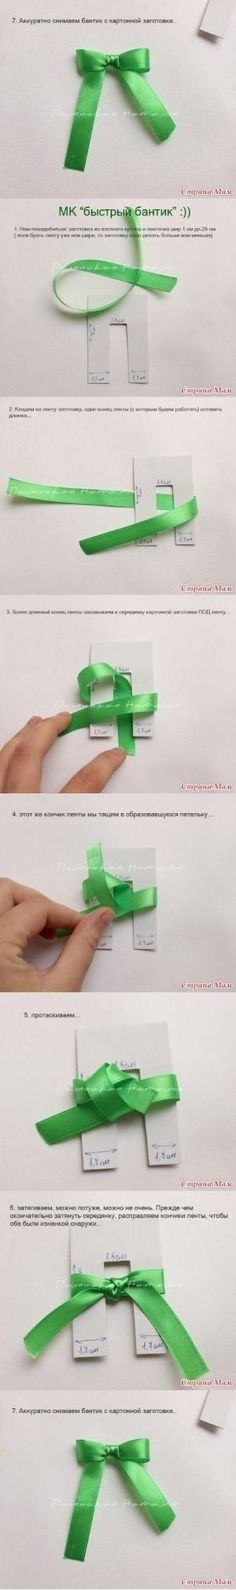 DIY Ribbon Bow Craft. Craft ideas 5013 - LC.Pandahall.com | DIY Jewelry & Crafts 2 | Pinterest by Jersica